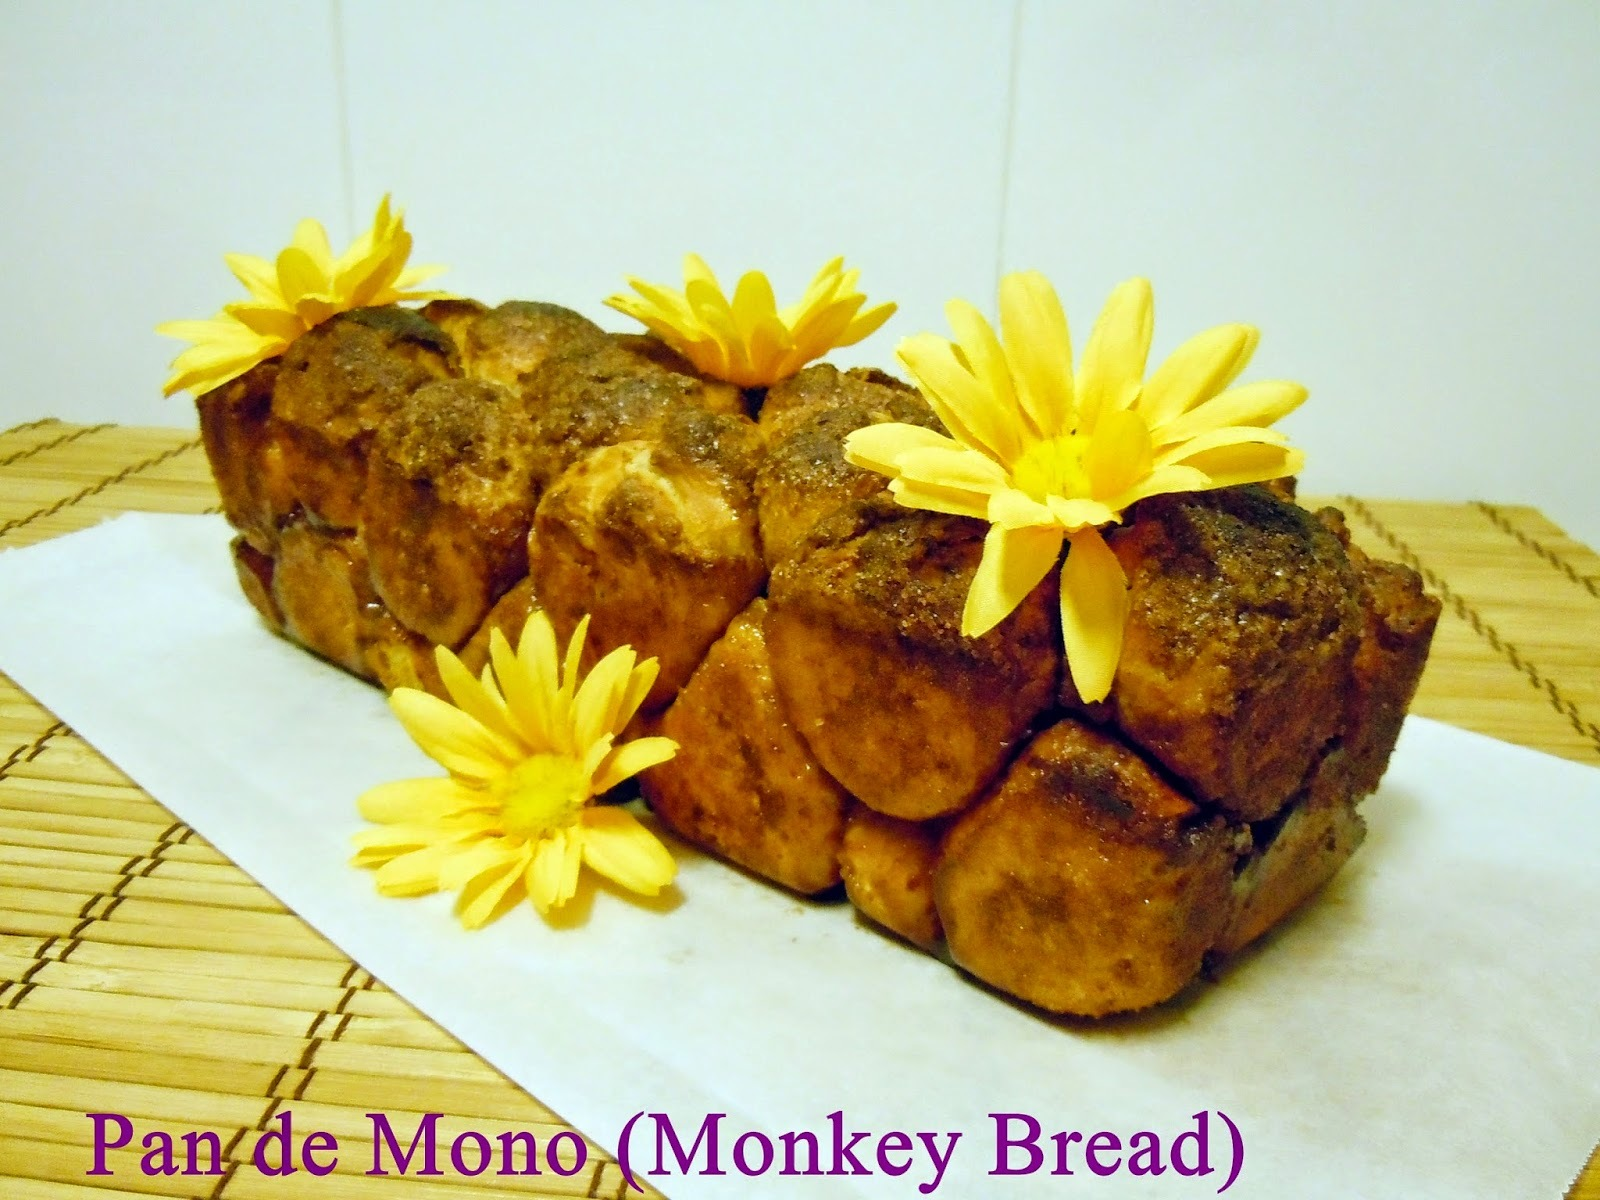 Pan de Mono (Monkey Bread)